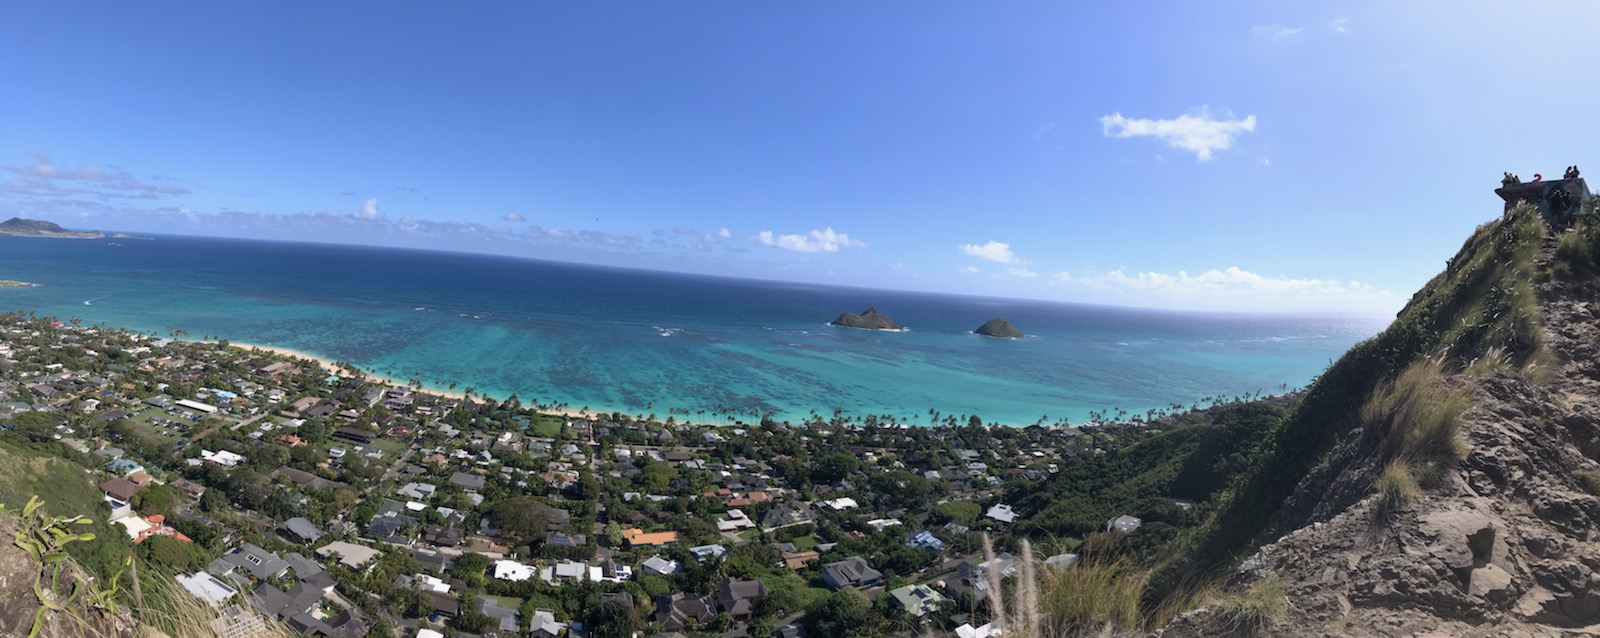 lanikai pillbox hike in kailua, hi